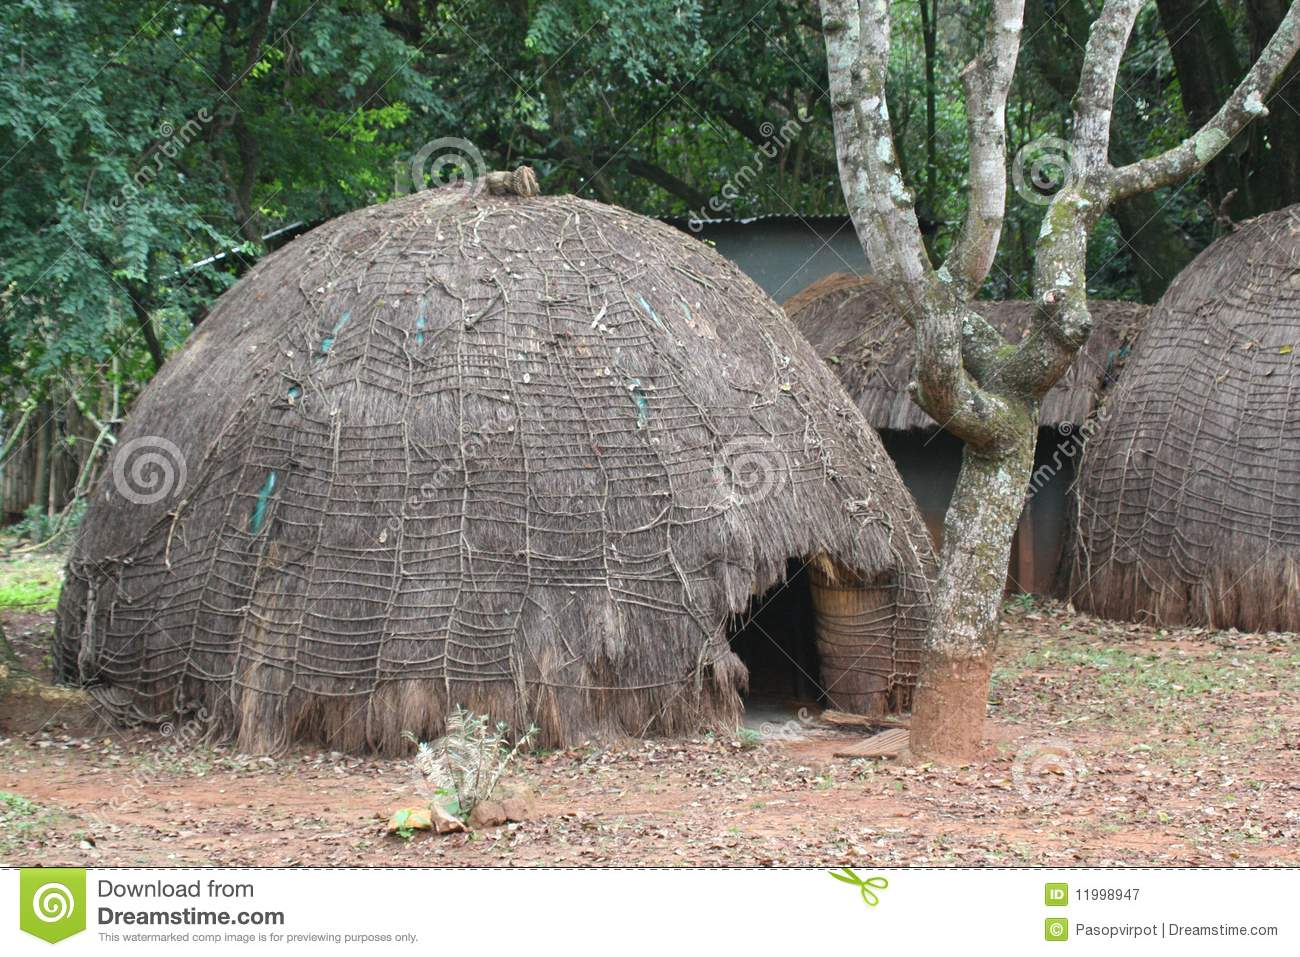 De traditionele hut van Swasiland